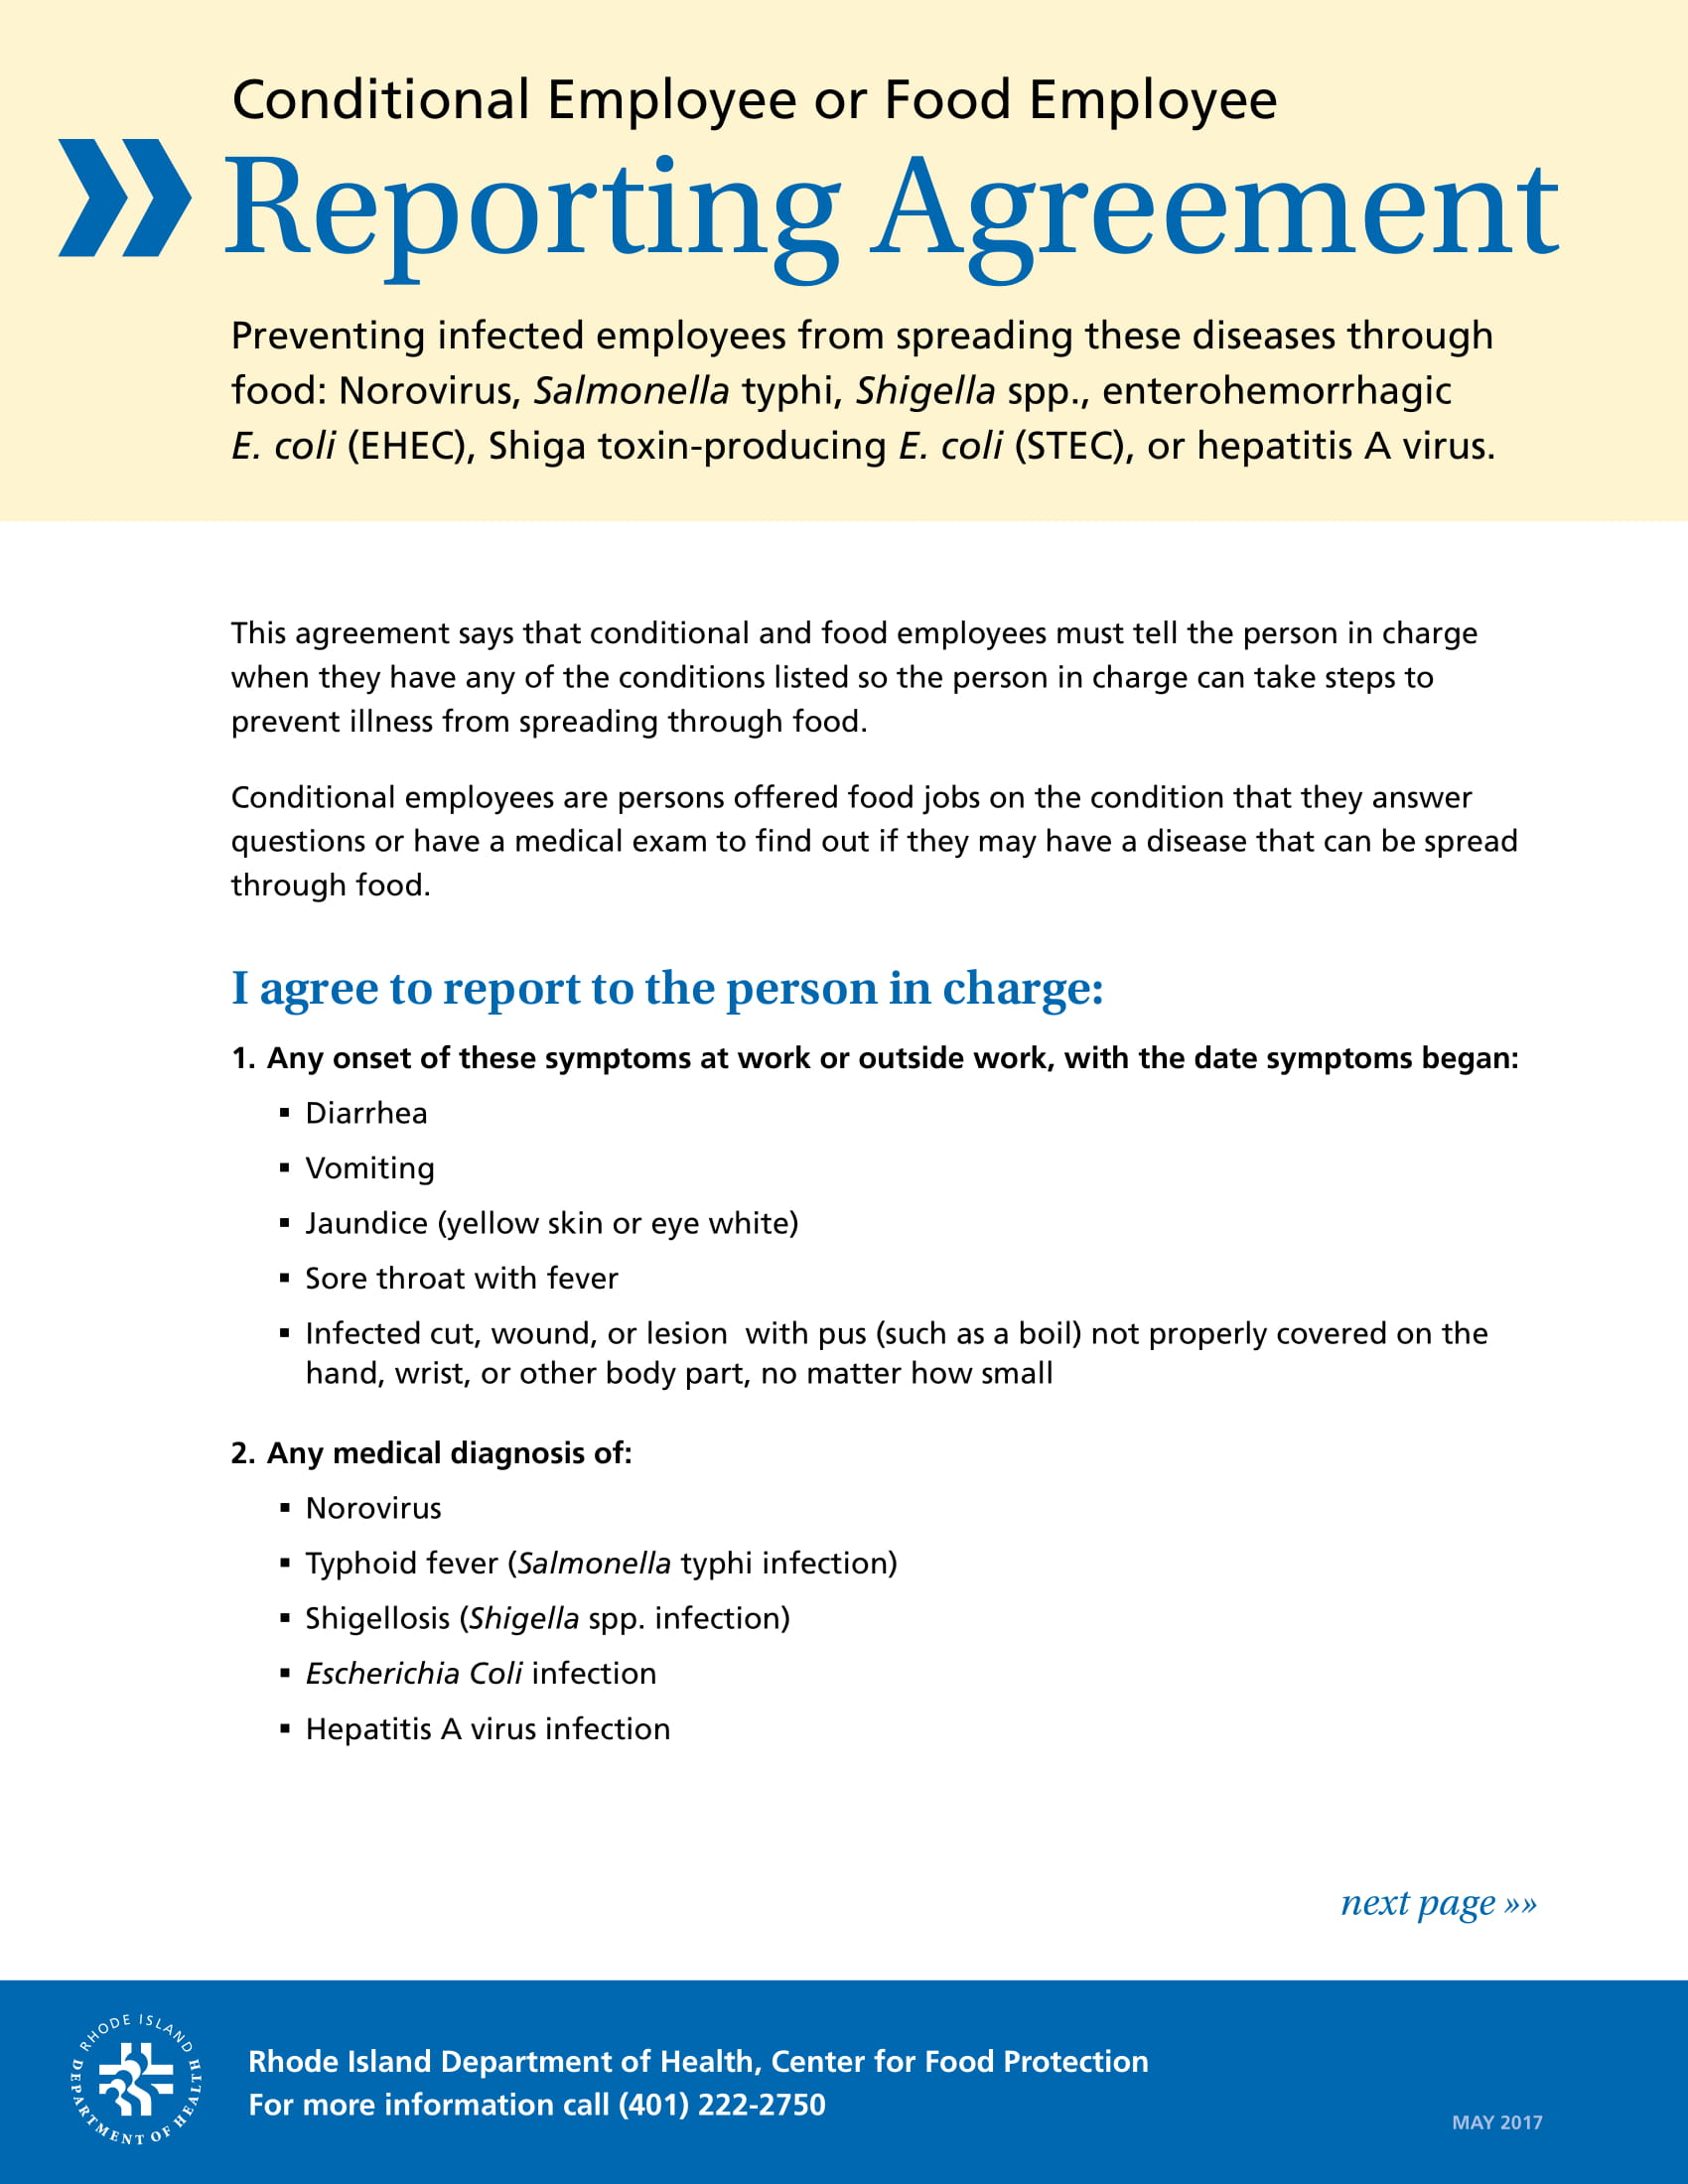 restaurant employee reporting agreement form 1